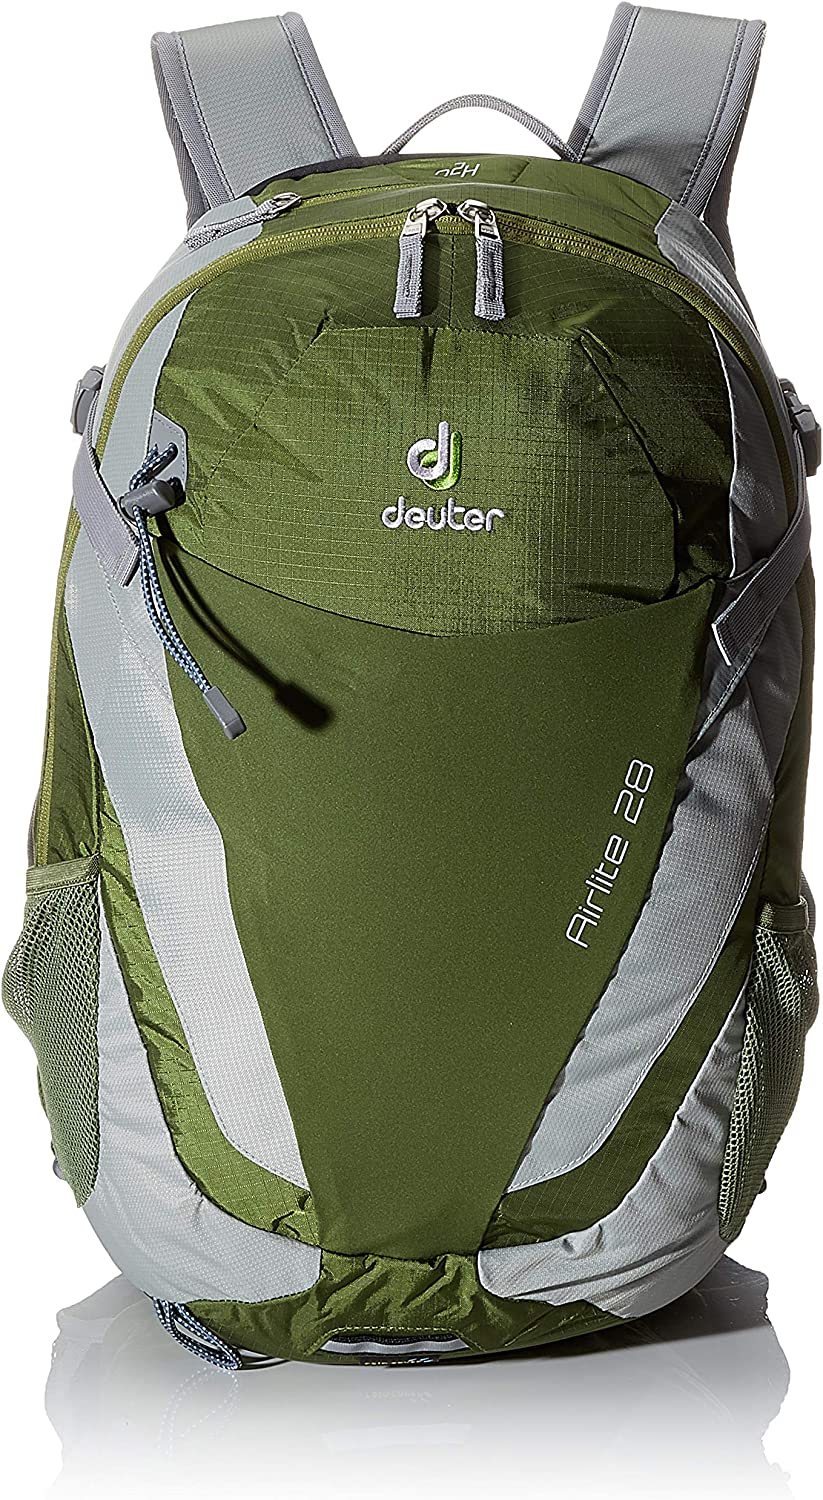 Deuter Airlite 28 Ultralight Day Hiking Backpack